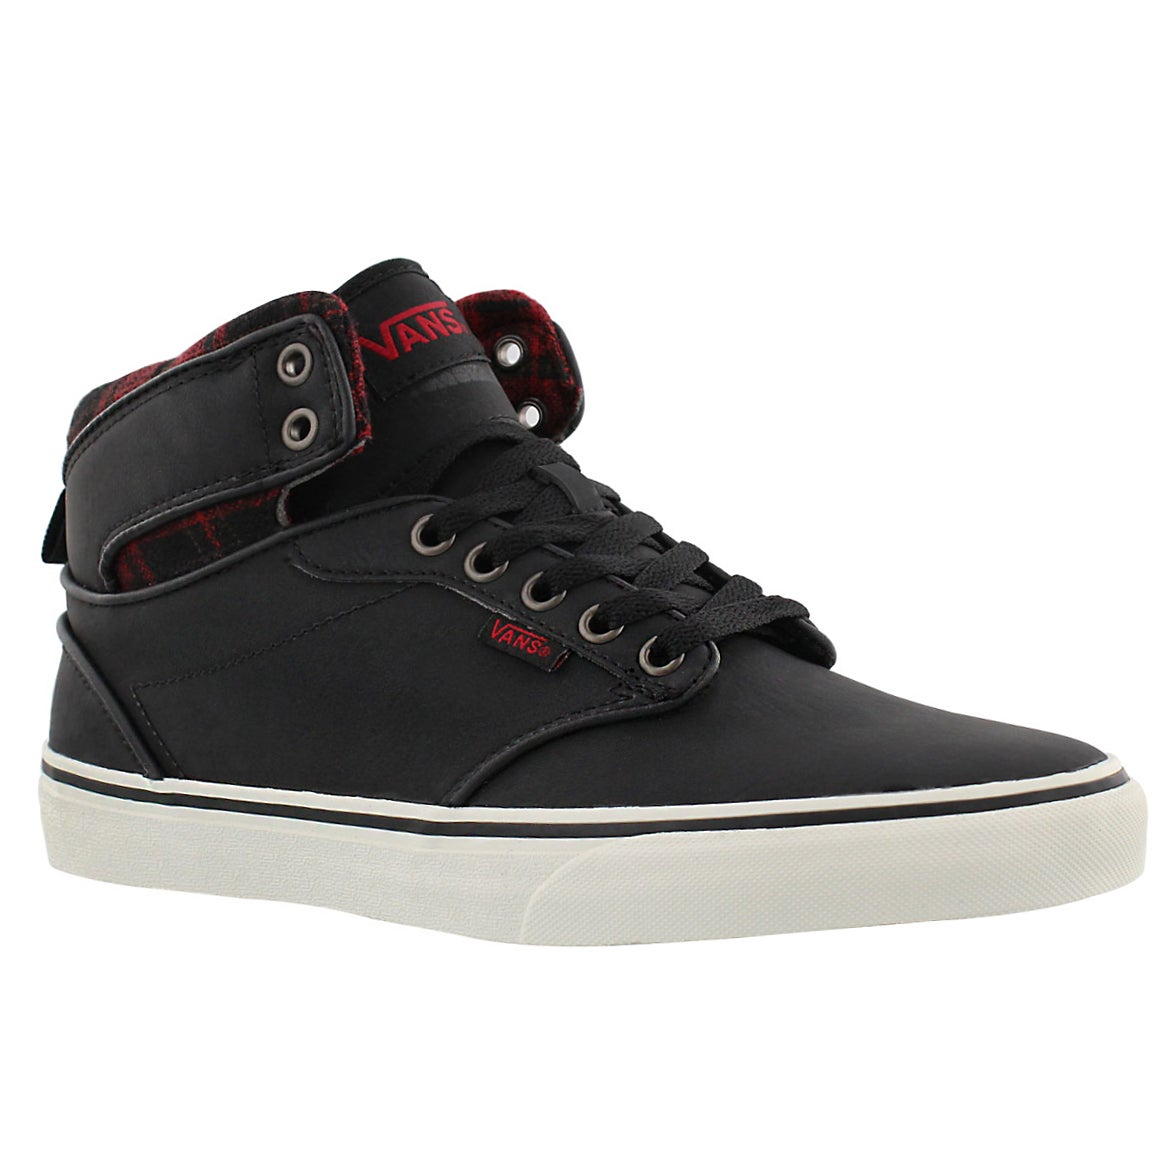 Men's ATWOOD HI leather lace up sneaker